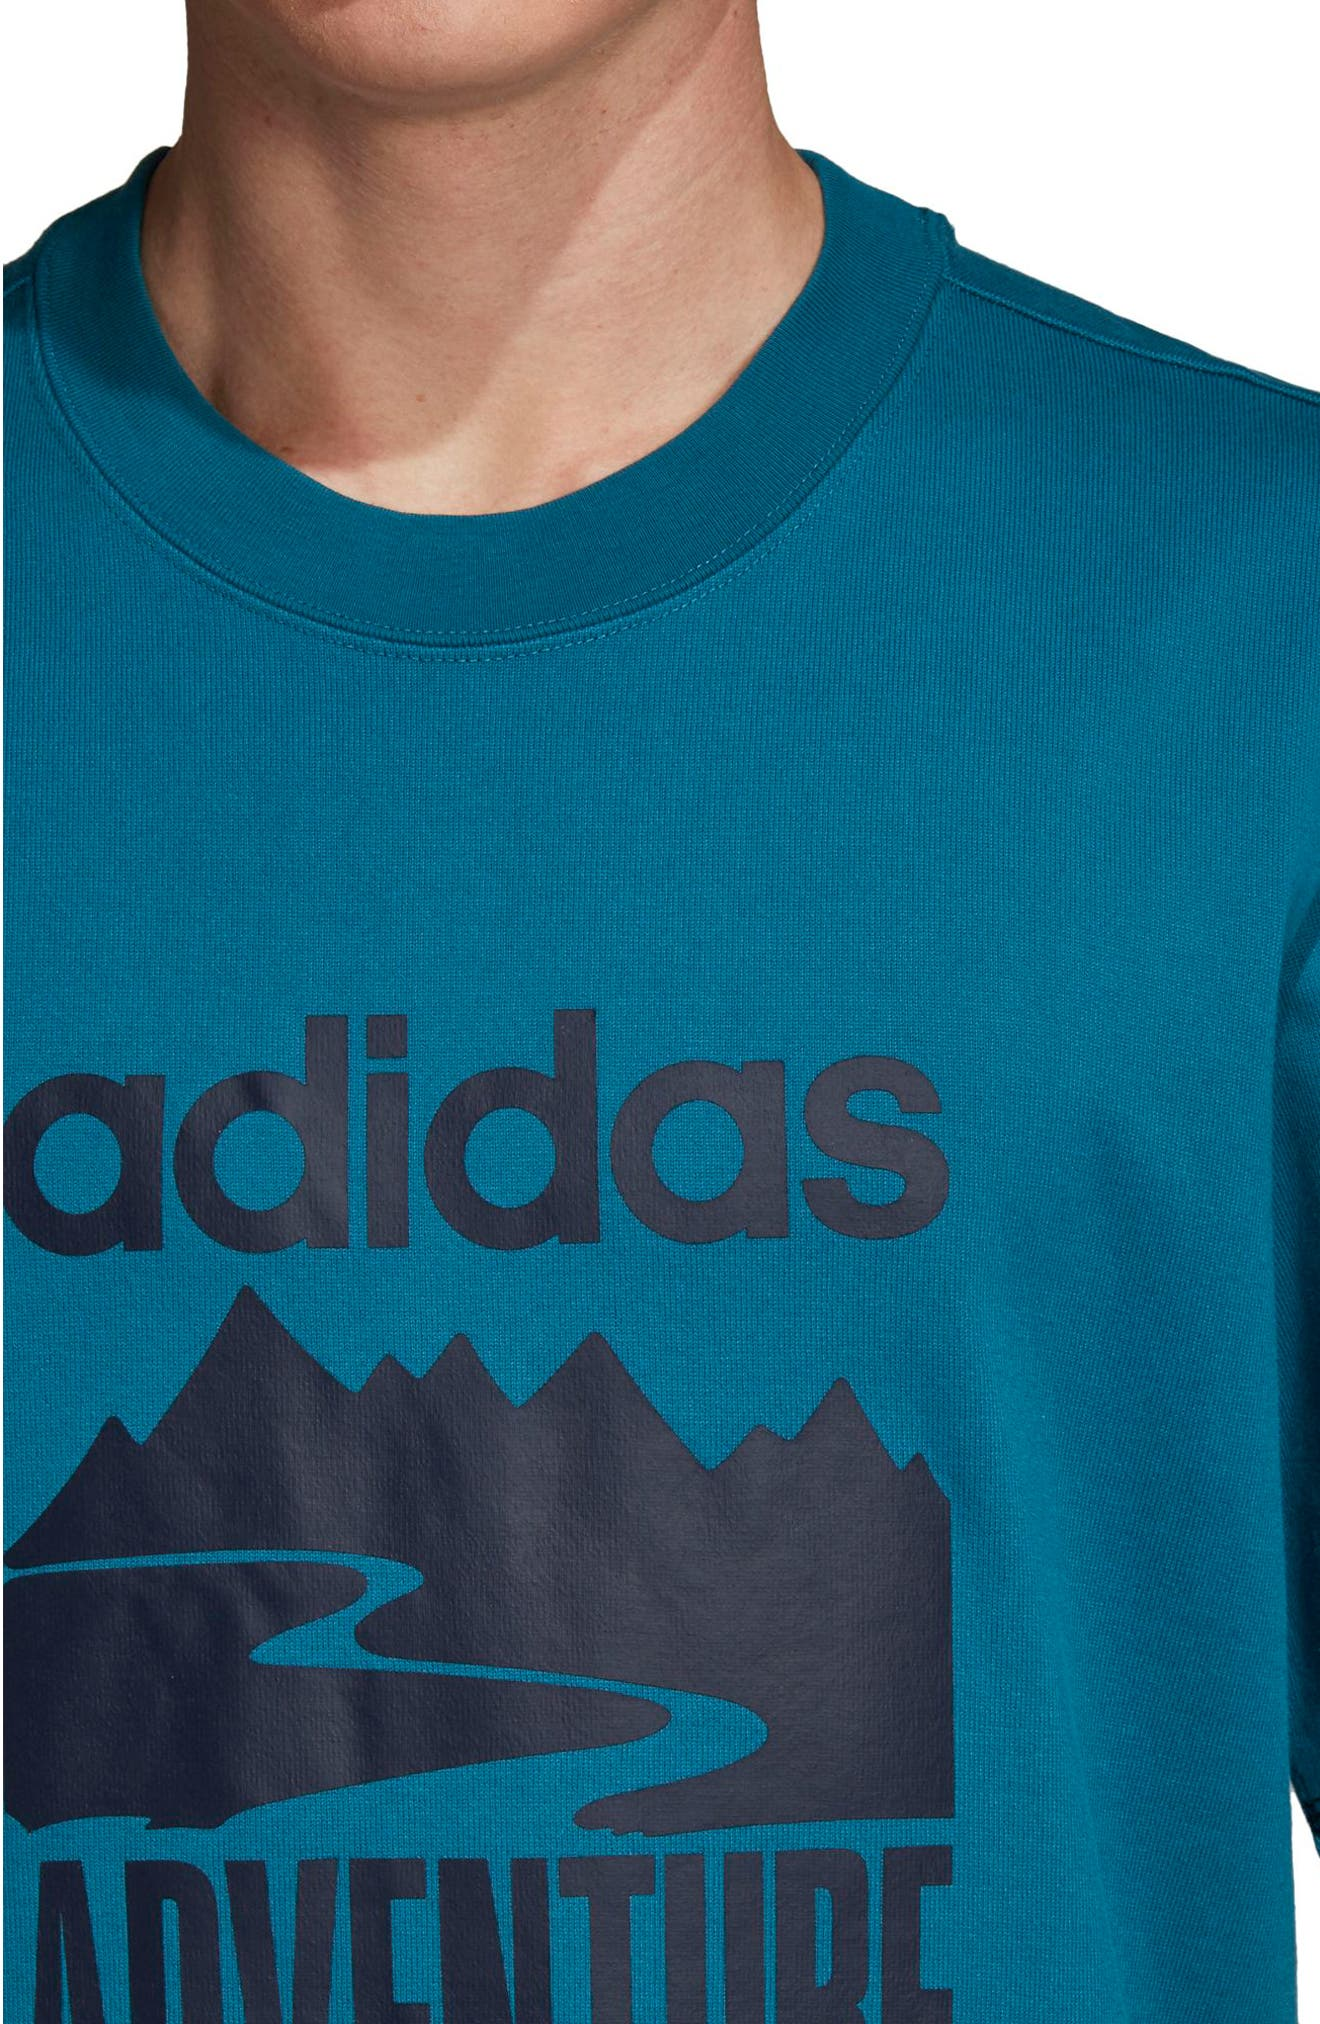 Adventure Graphic T-Shirt,                             Alternate thumbnail 4, color,                             Real Teal